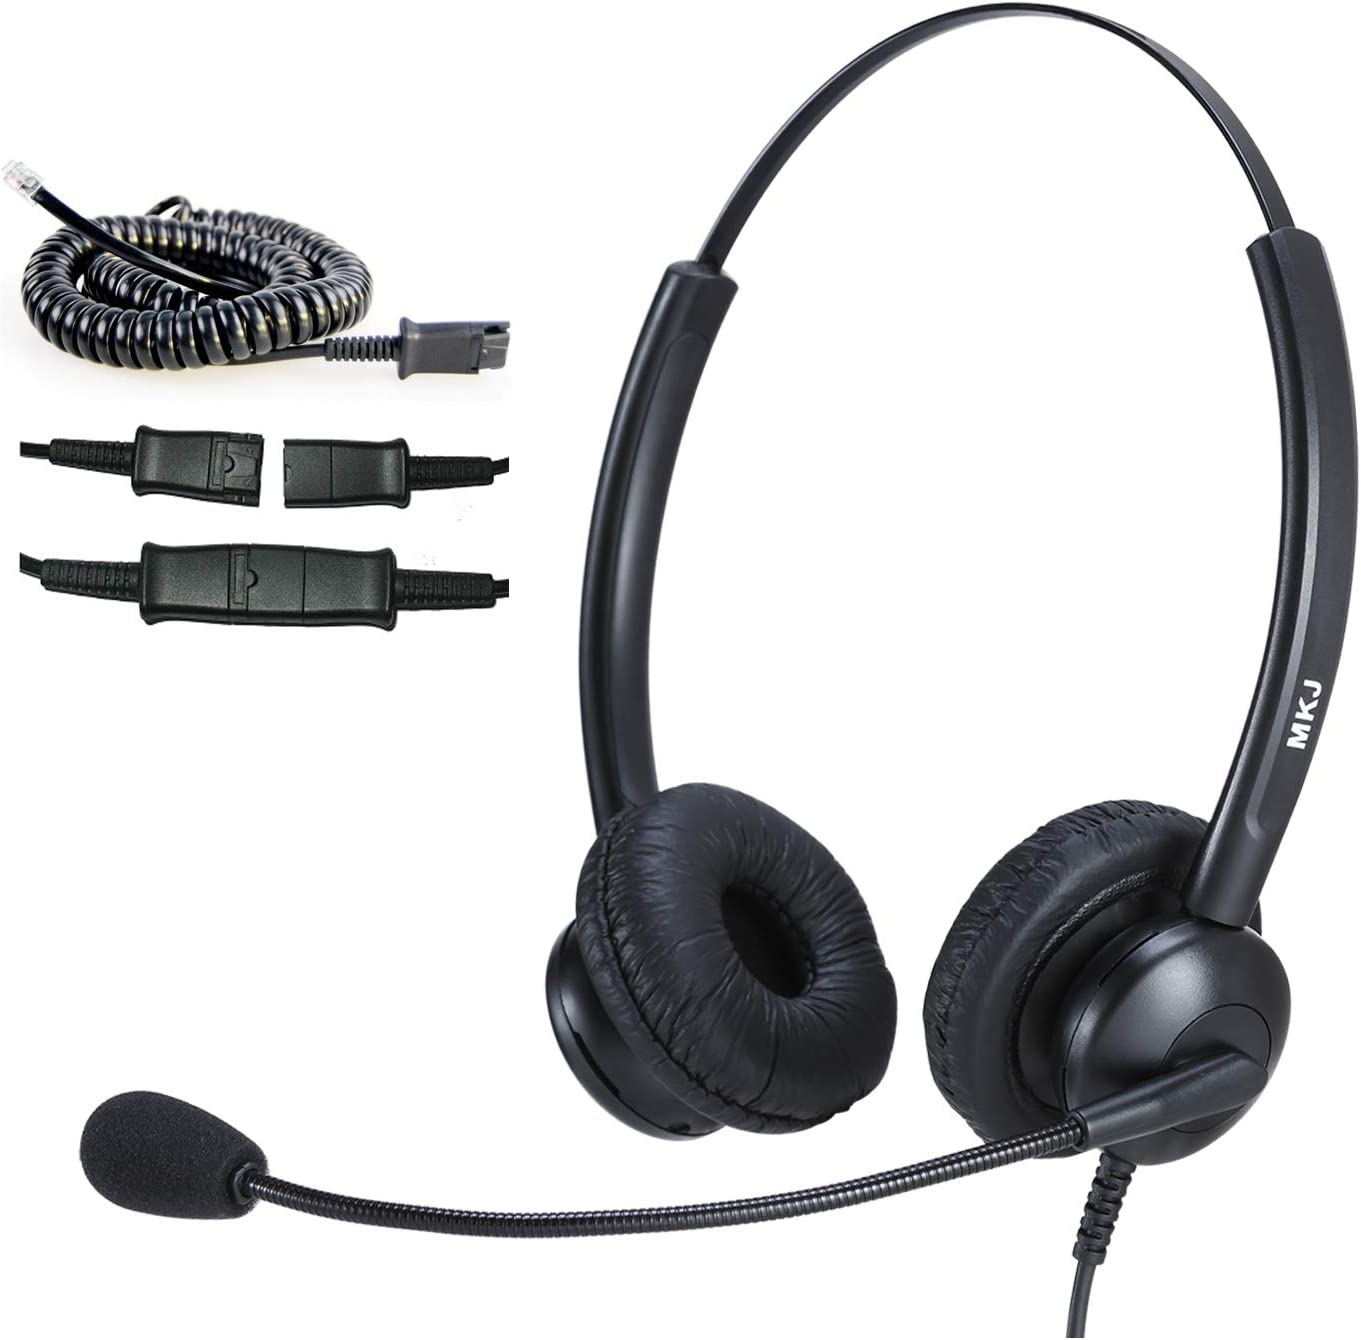 Cisco Headset for Office Phones Dual Ear Landline Headset with Noise Cancelling Microphone for Cisco Telephone CP-7821 7841 7942G 7940 7941G 7945G 79607961G 7962G 7965G 7970 7971G 7975G 8841 8865 9971